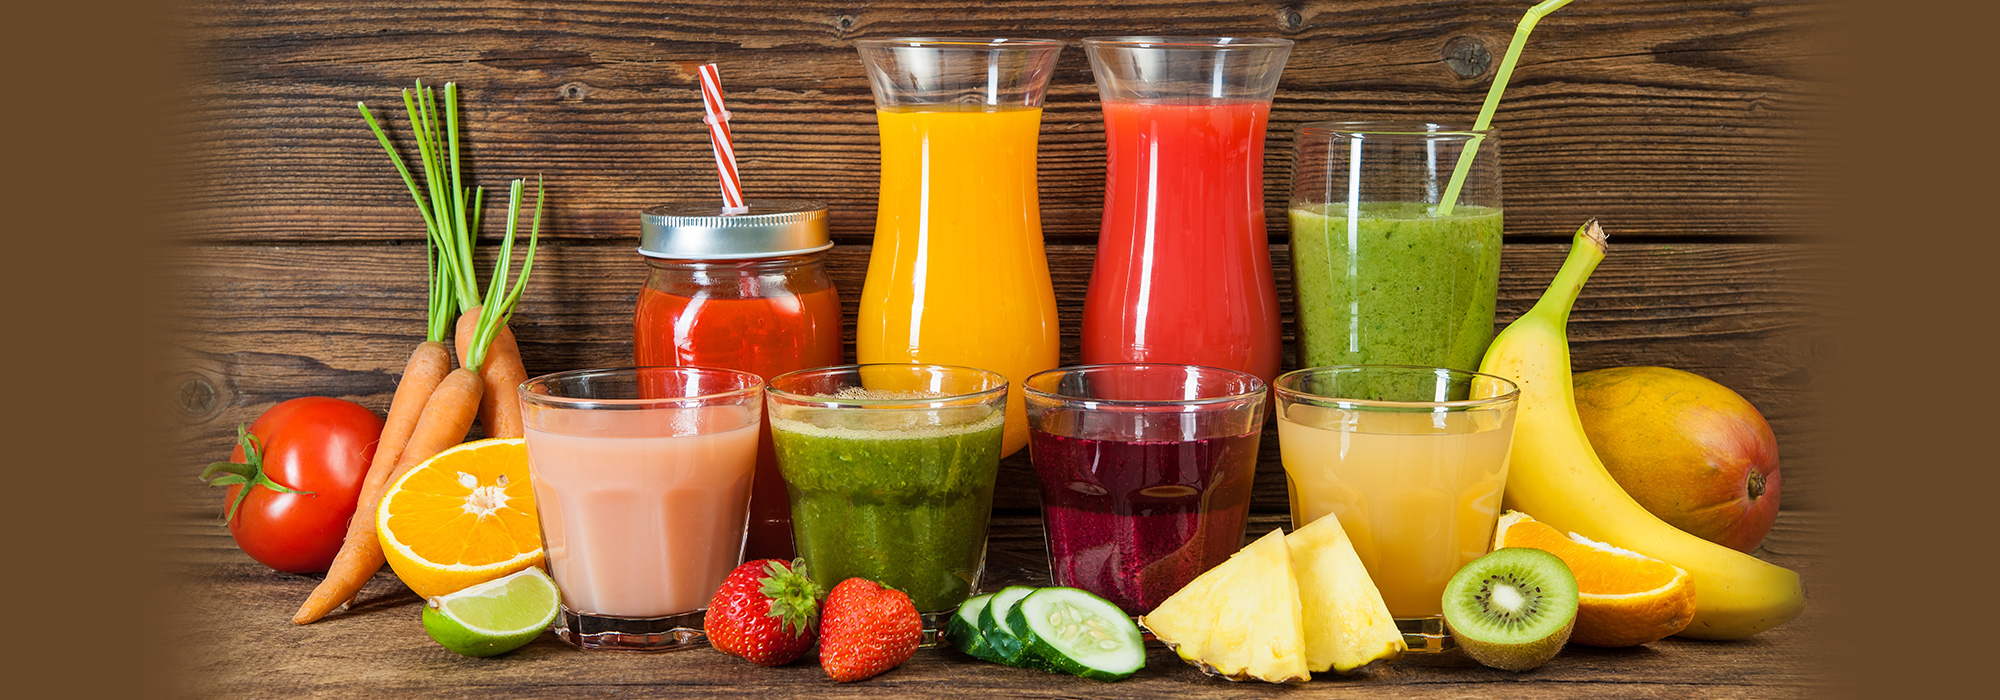 home quality processed fruit vegetable purees juices